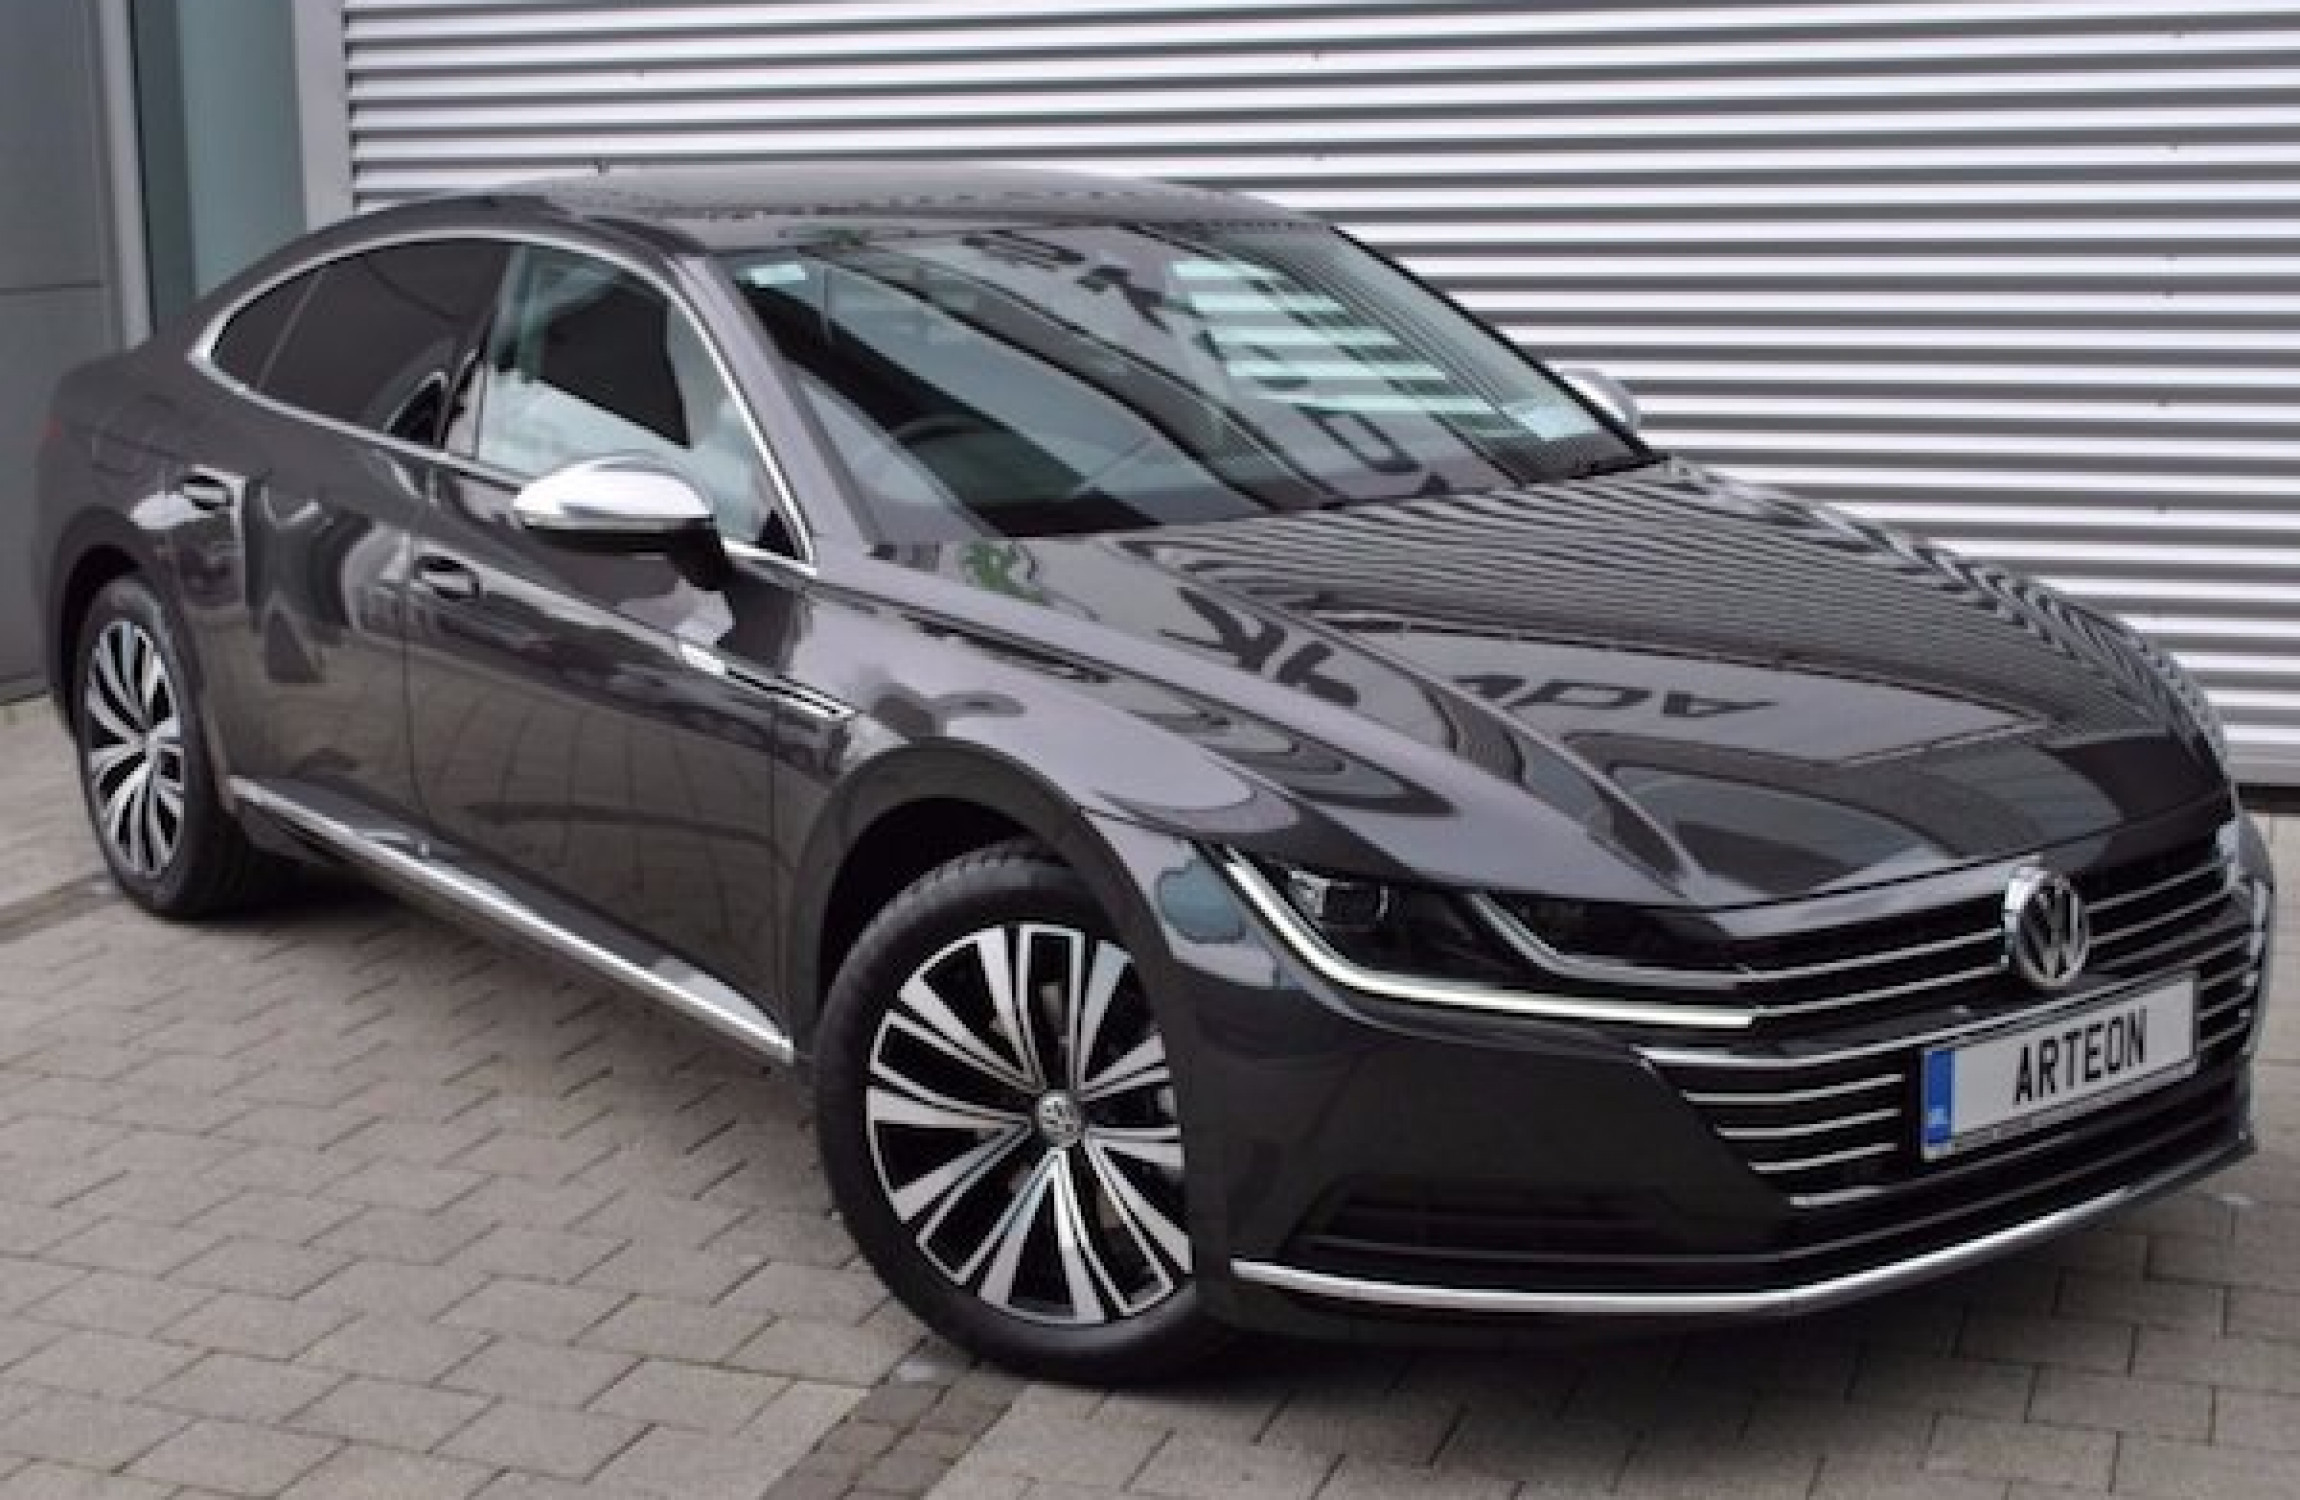 Motor Envy: The new Volkswagen Arteon scores big in the style stakes